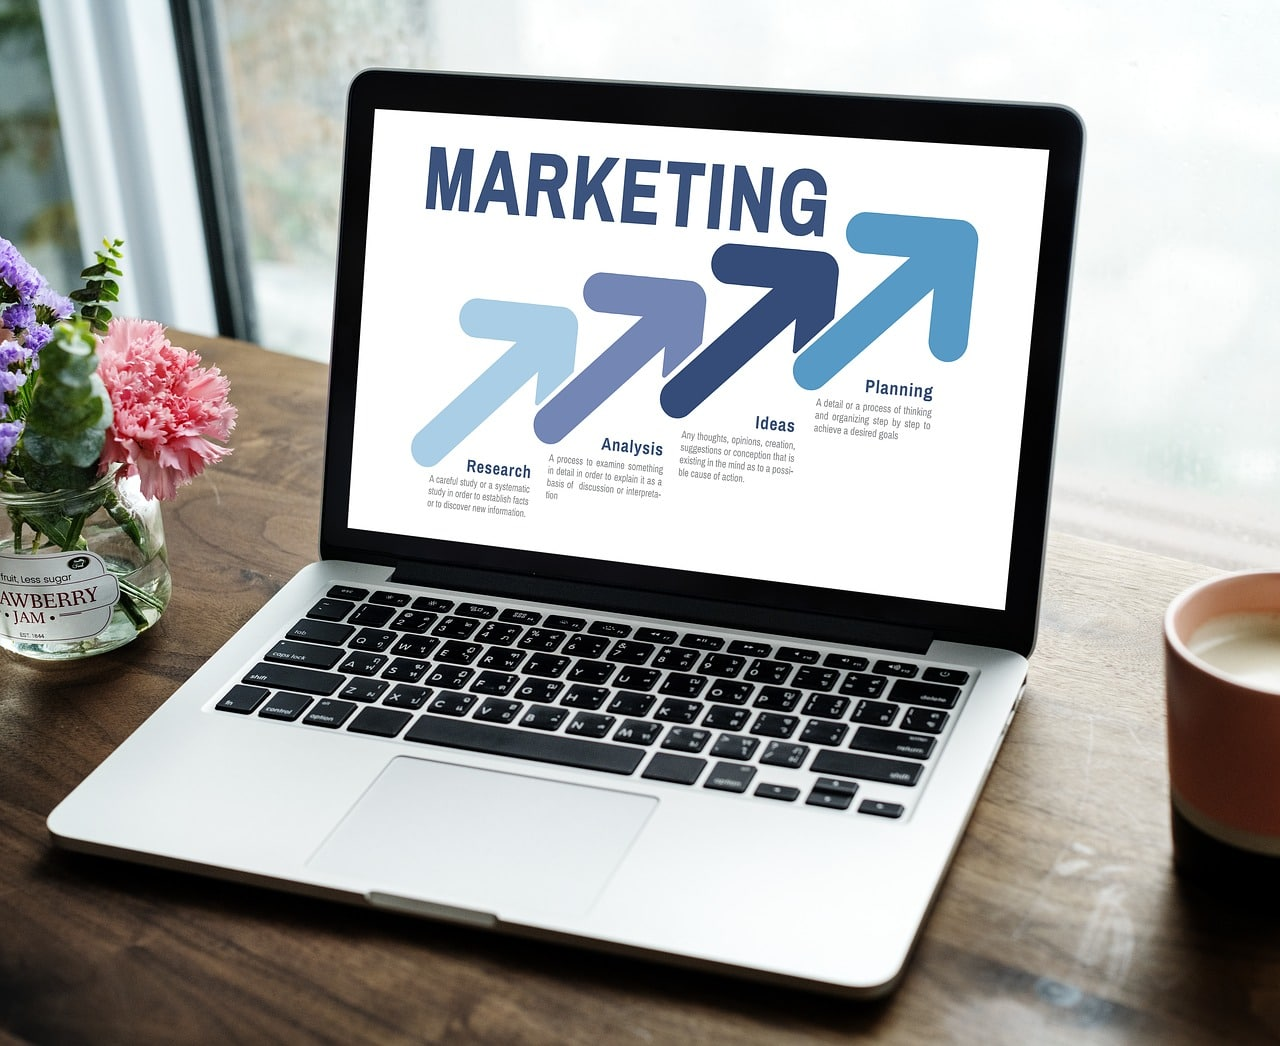 Digital Marketing made easy in 2019